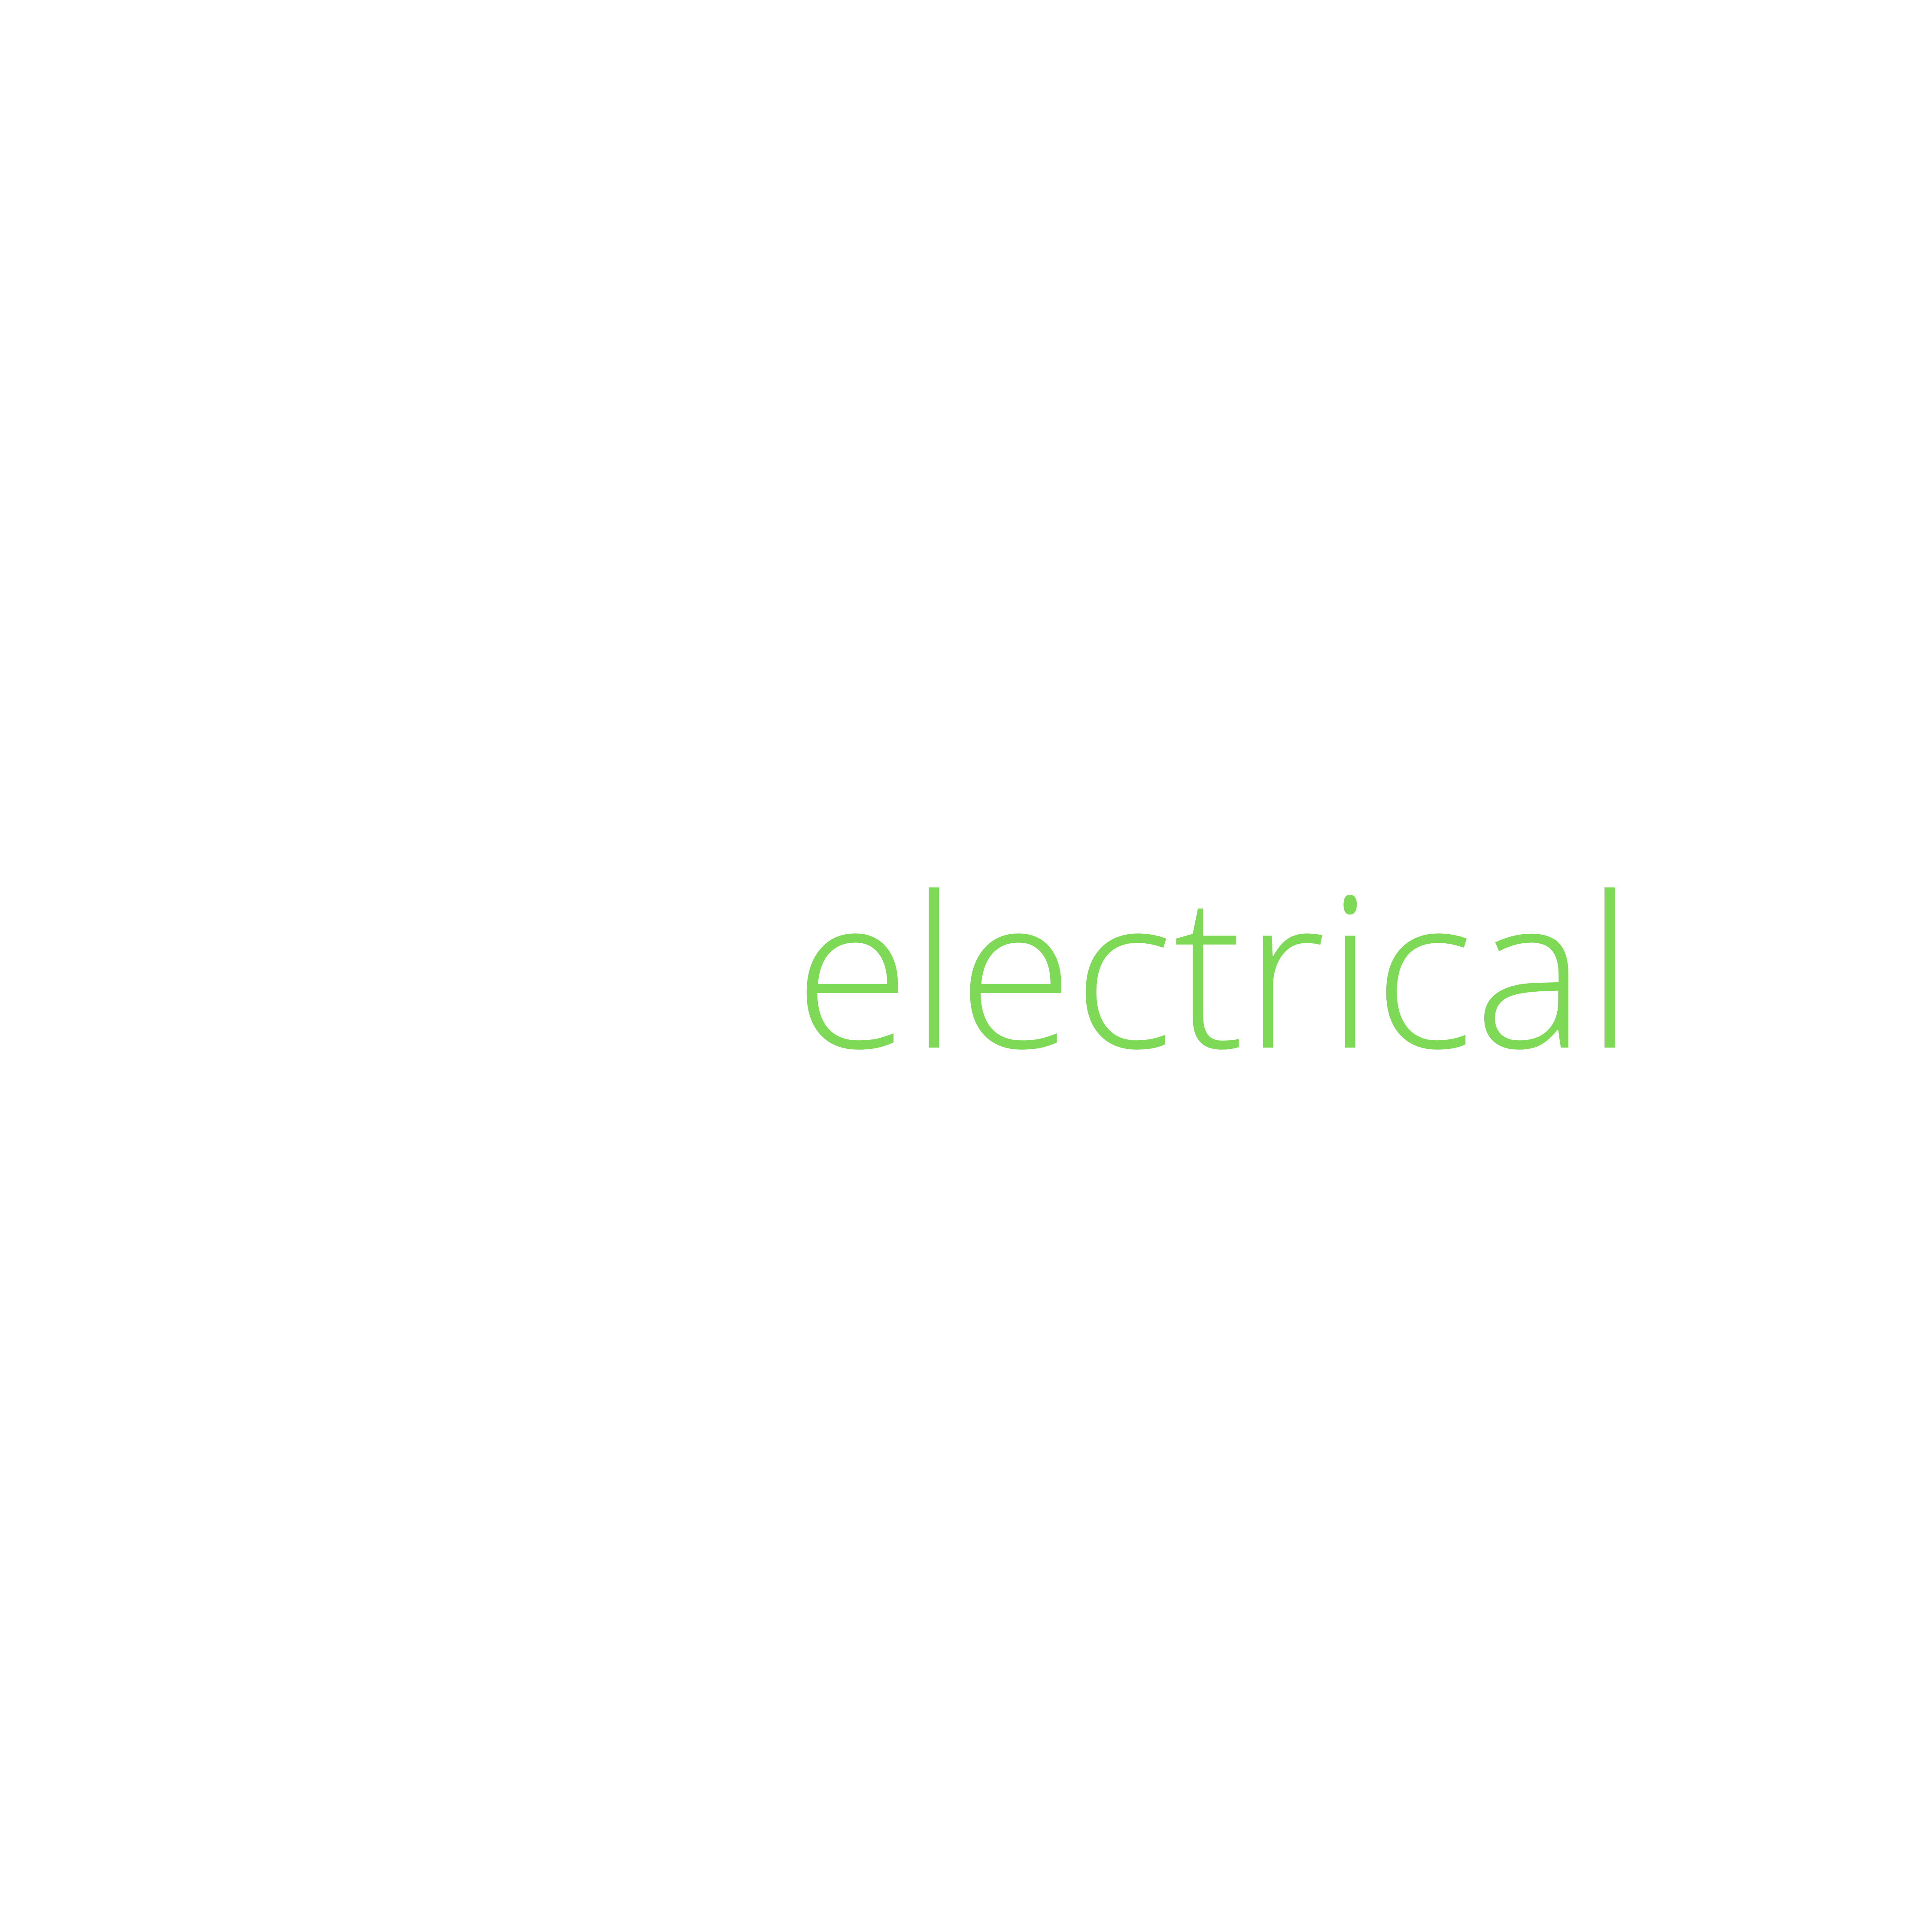 Mayfield Electrical Ltd